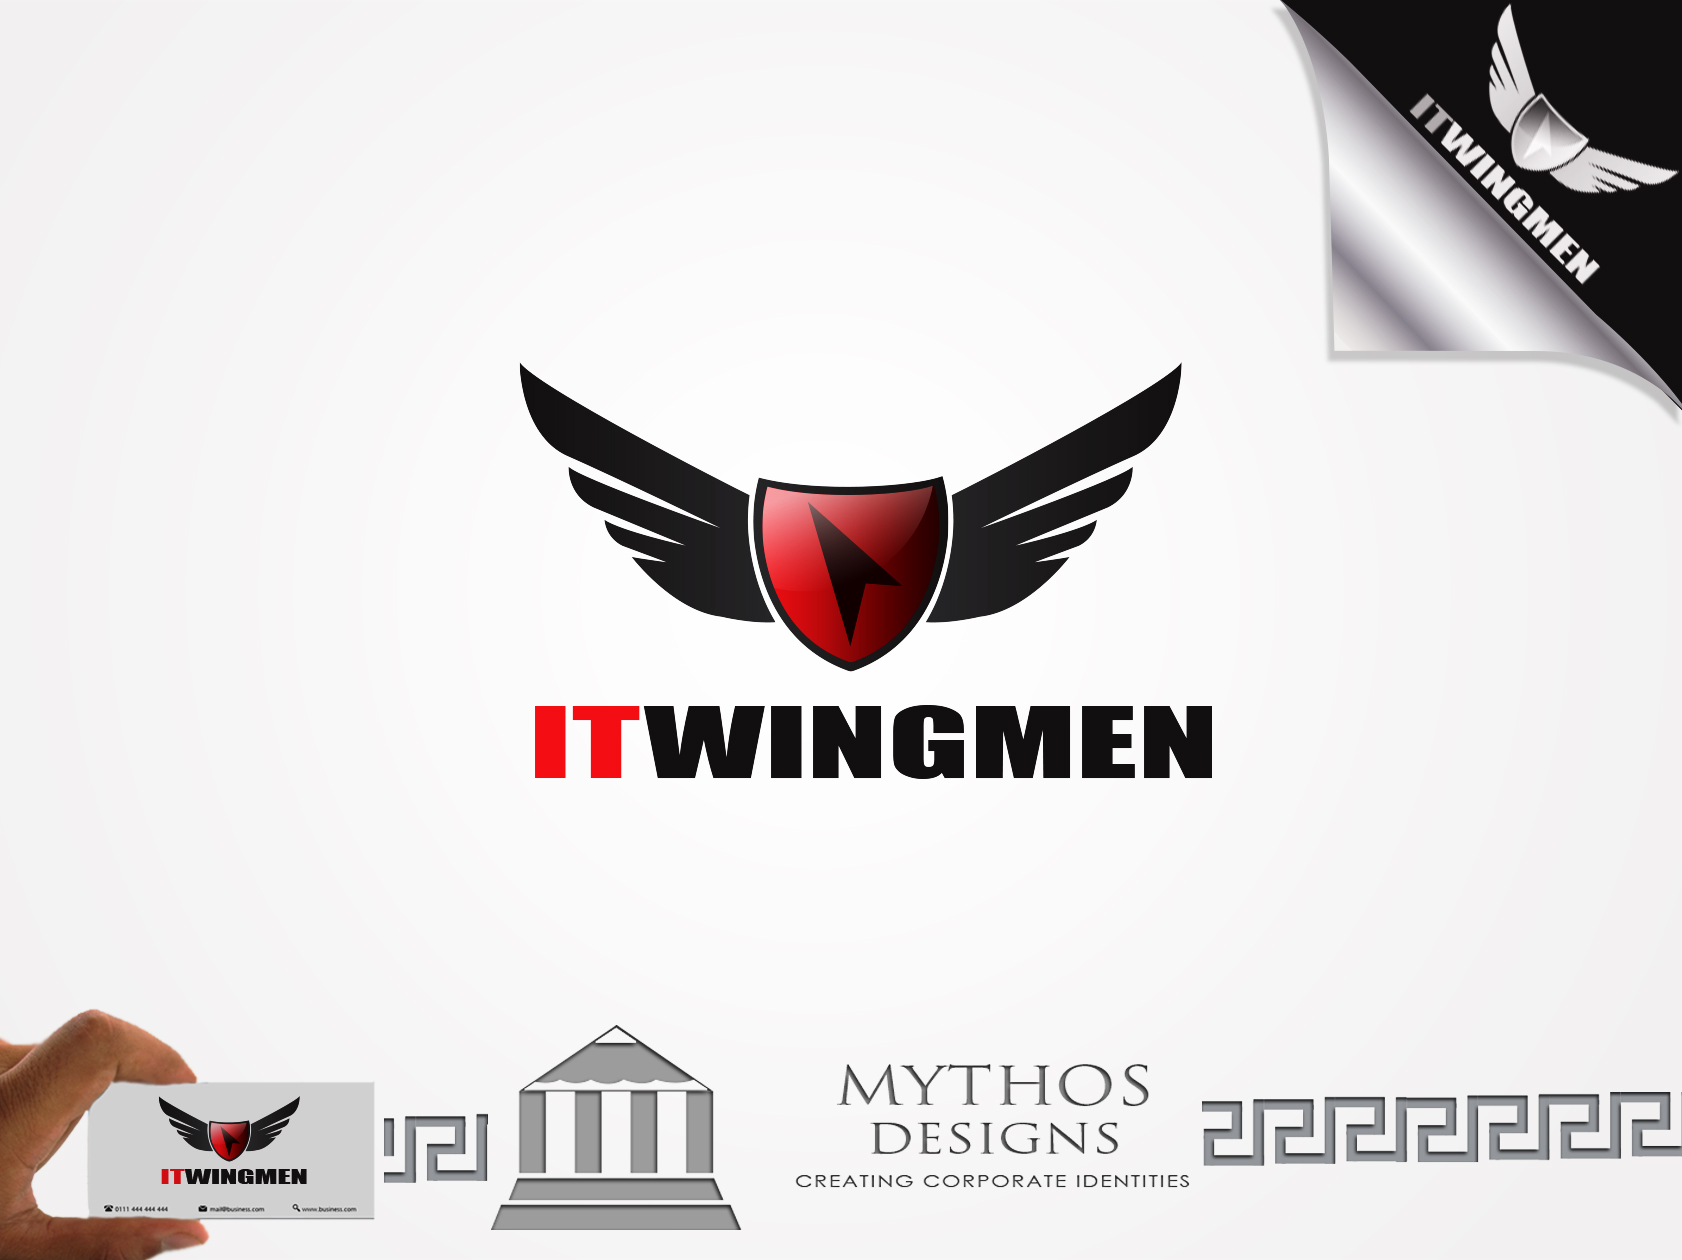 Logo Design by Mythos Designs - Entry No. 71 in the Logo Design Contest New Logo Design for IT Wingmen.